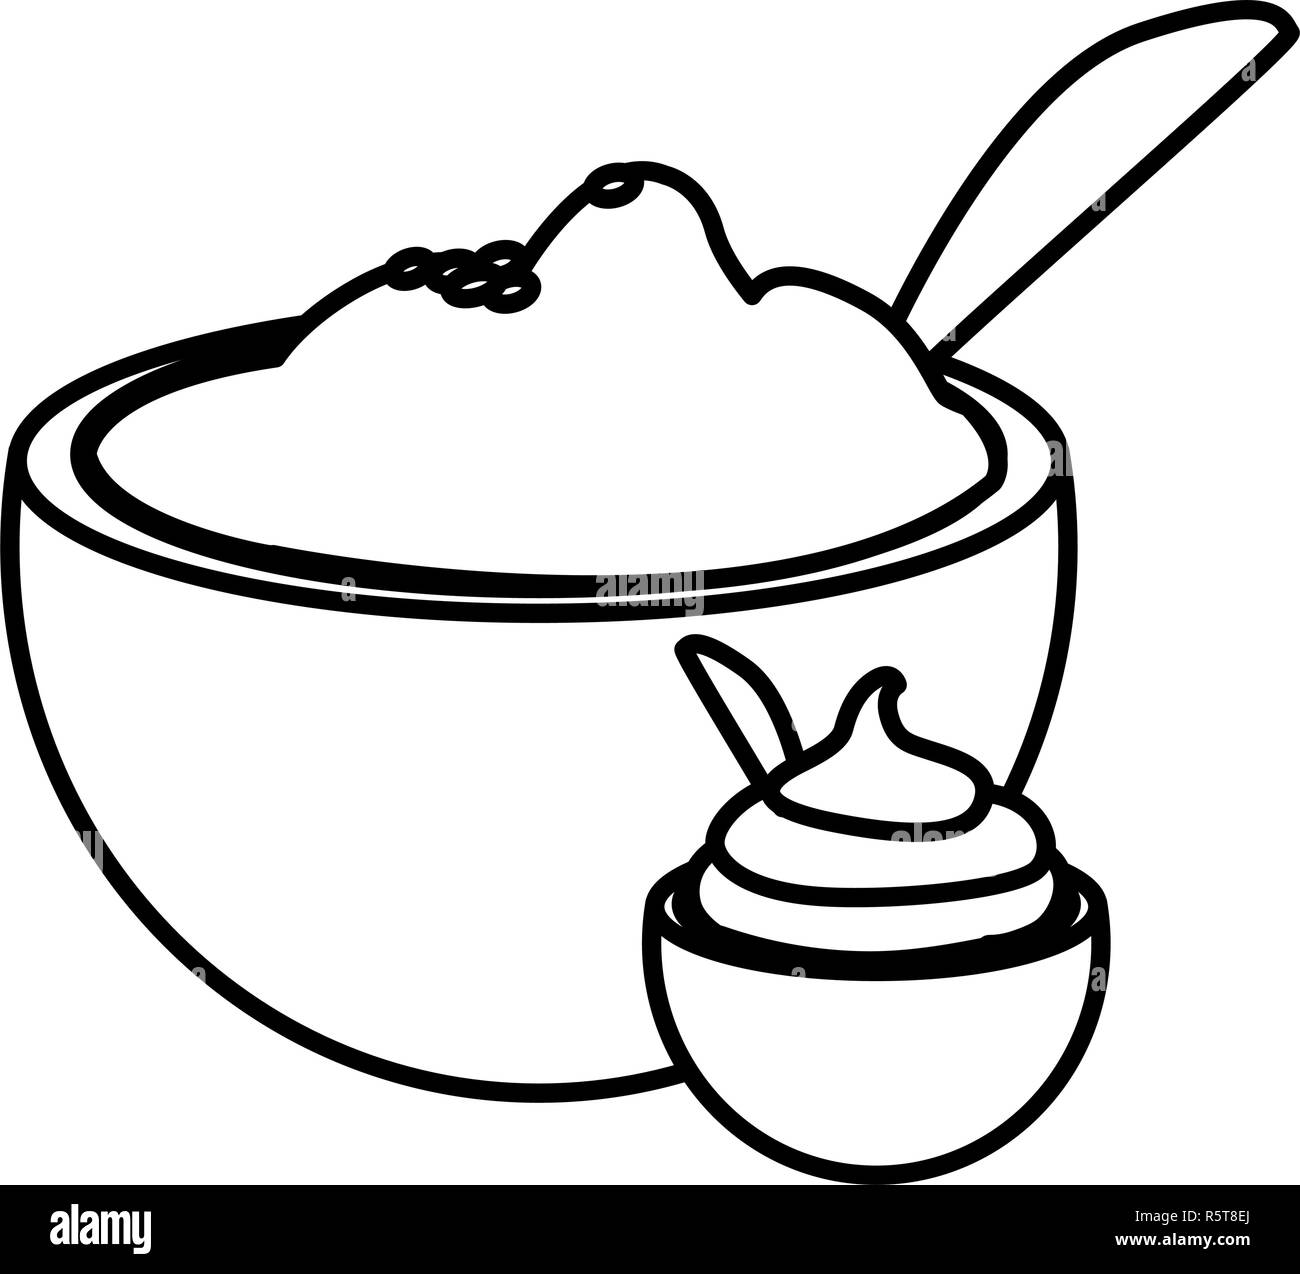 bowl with mashed potatoes over white background, vector illustration - Stock Vector